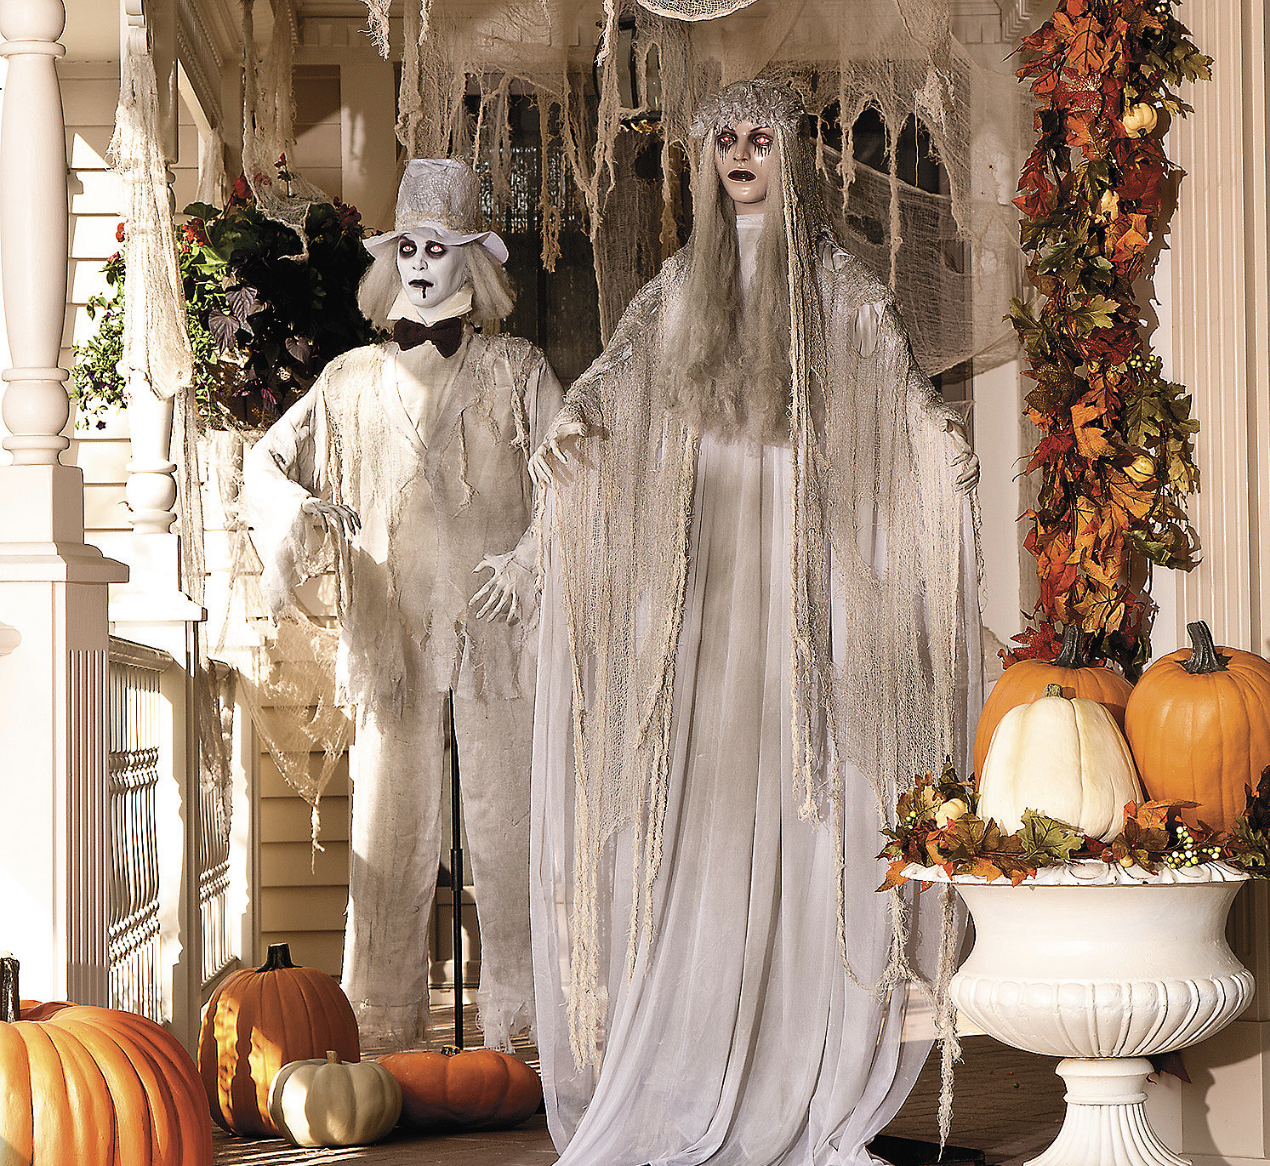 Scary Halloween decorations 2019